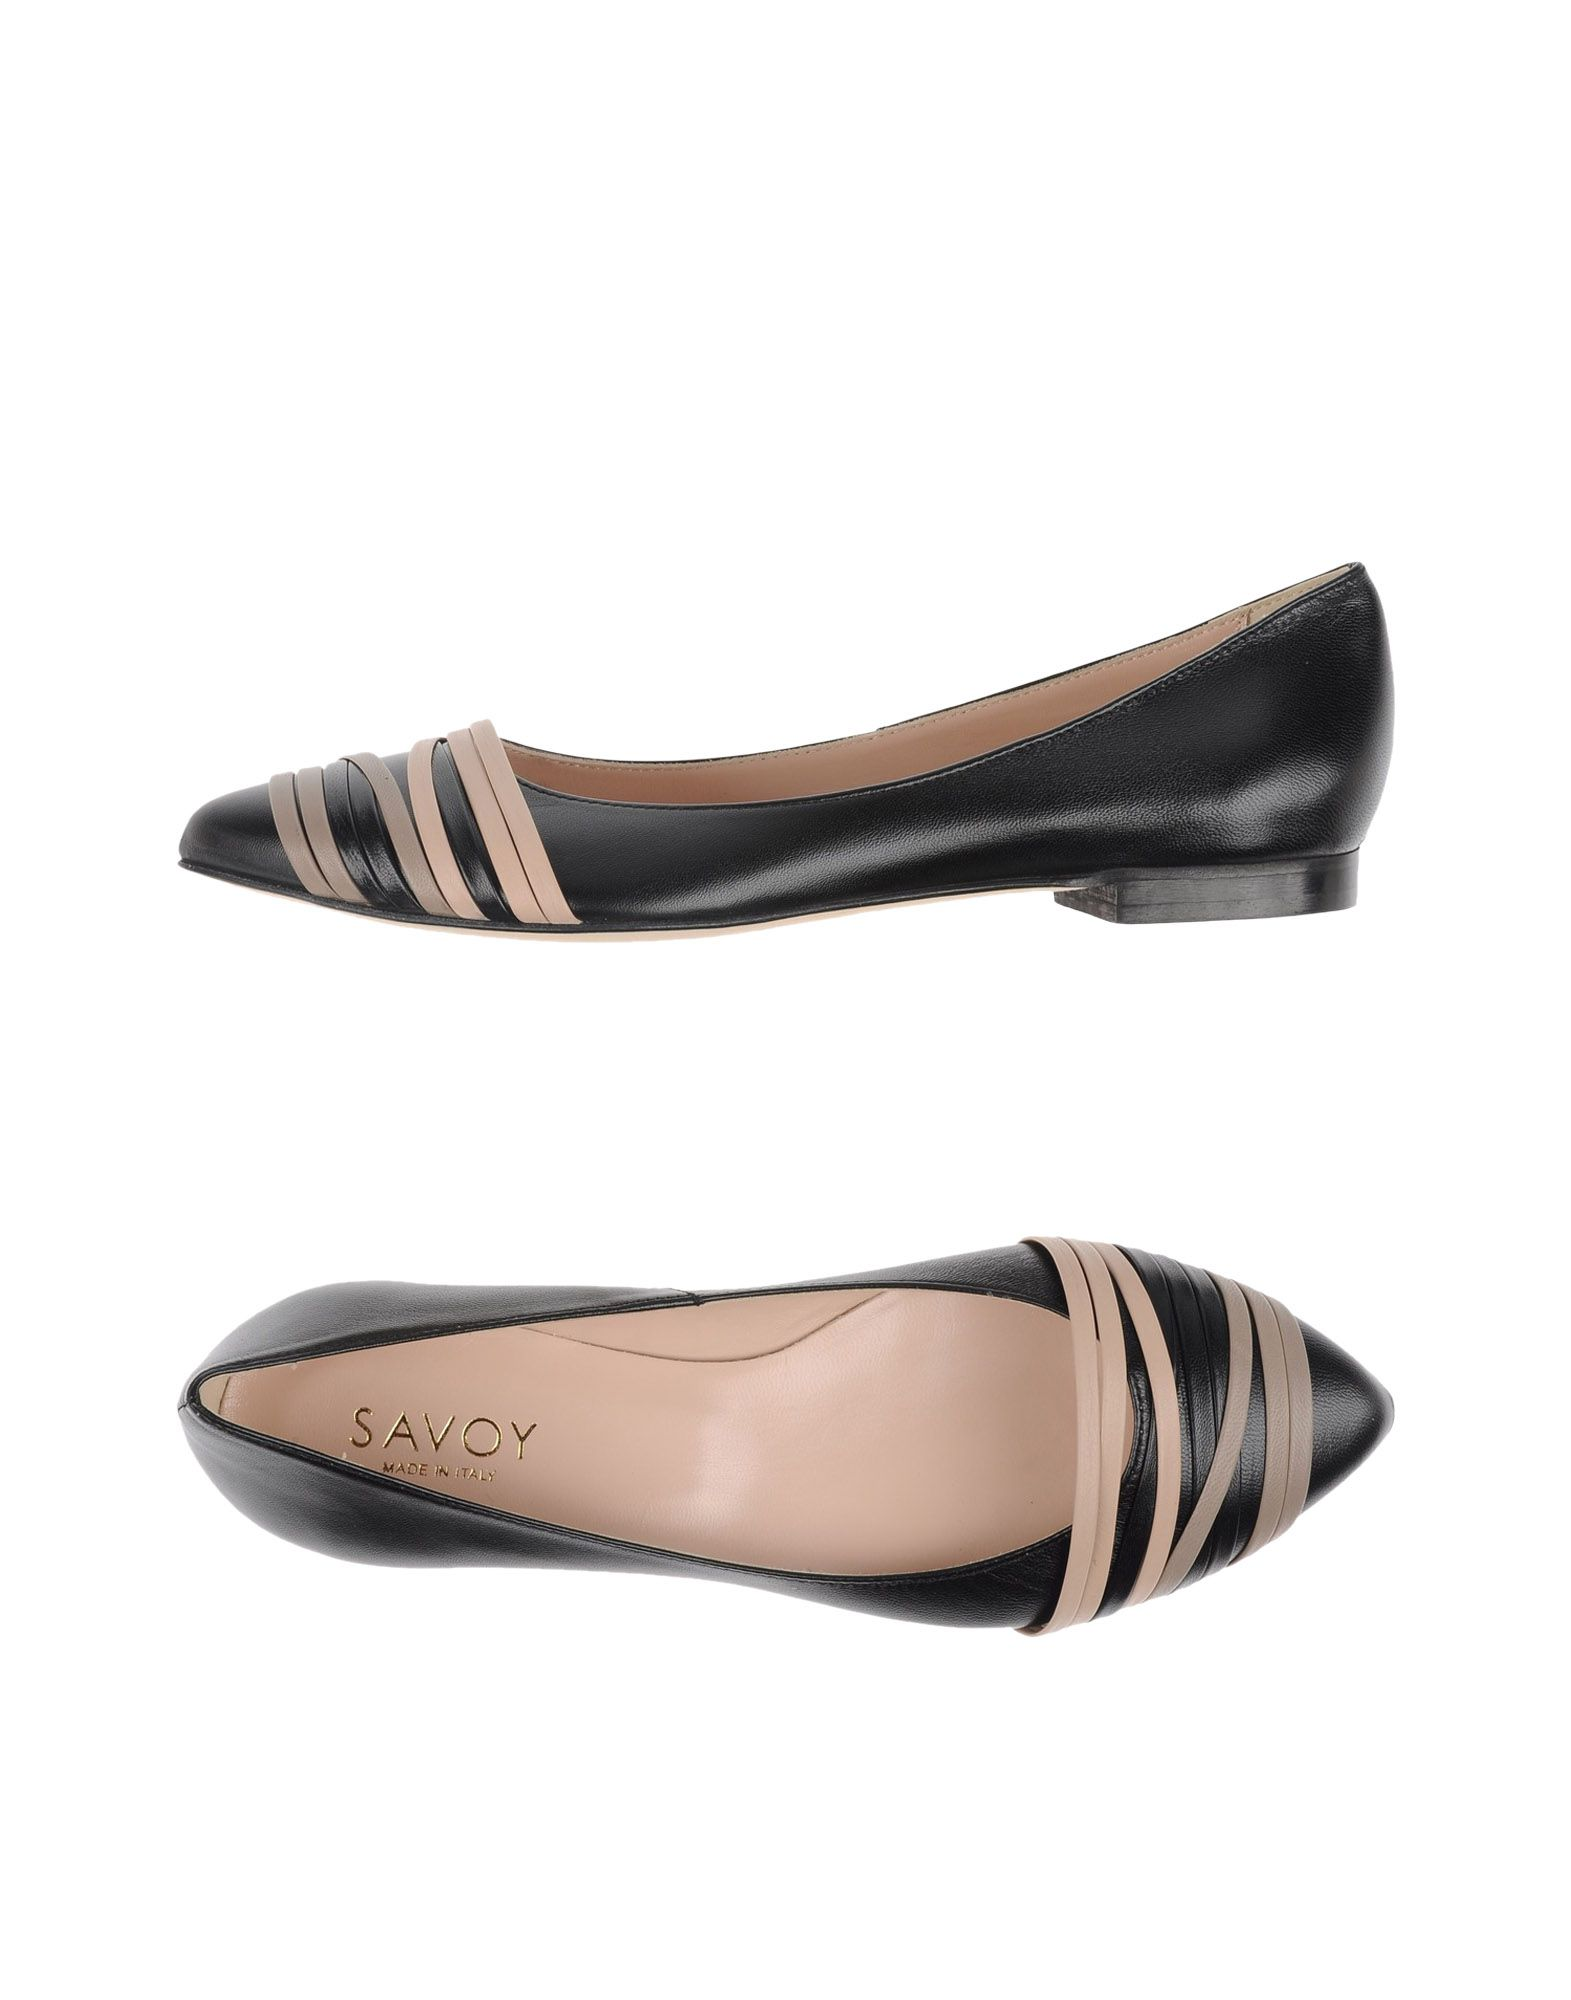 SAVOY Балетки trendy women s sandals with patent leather and buckles design